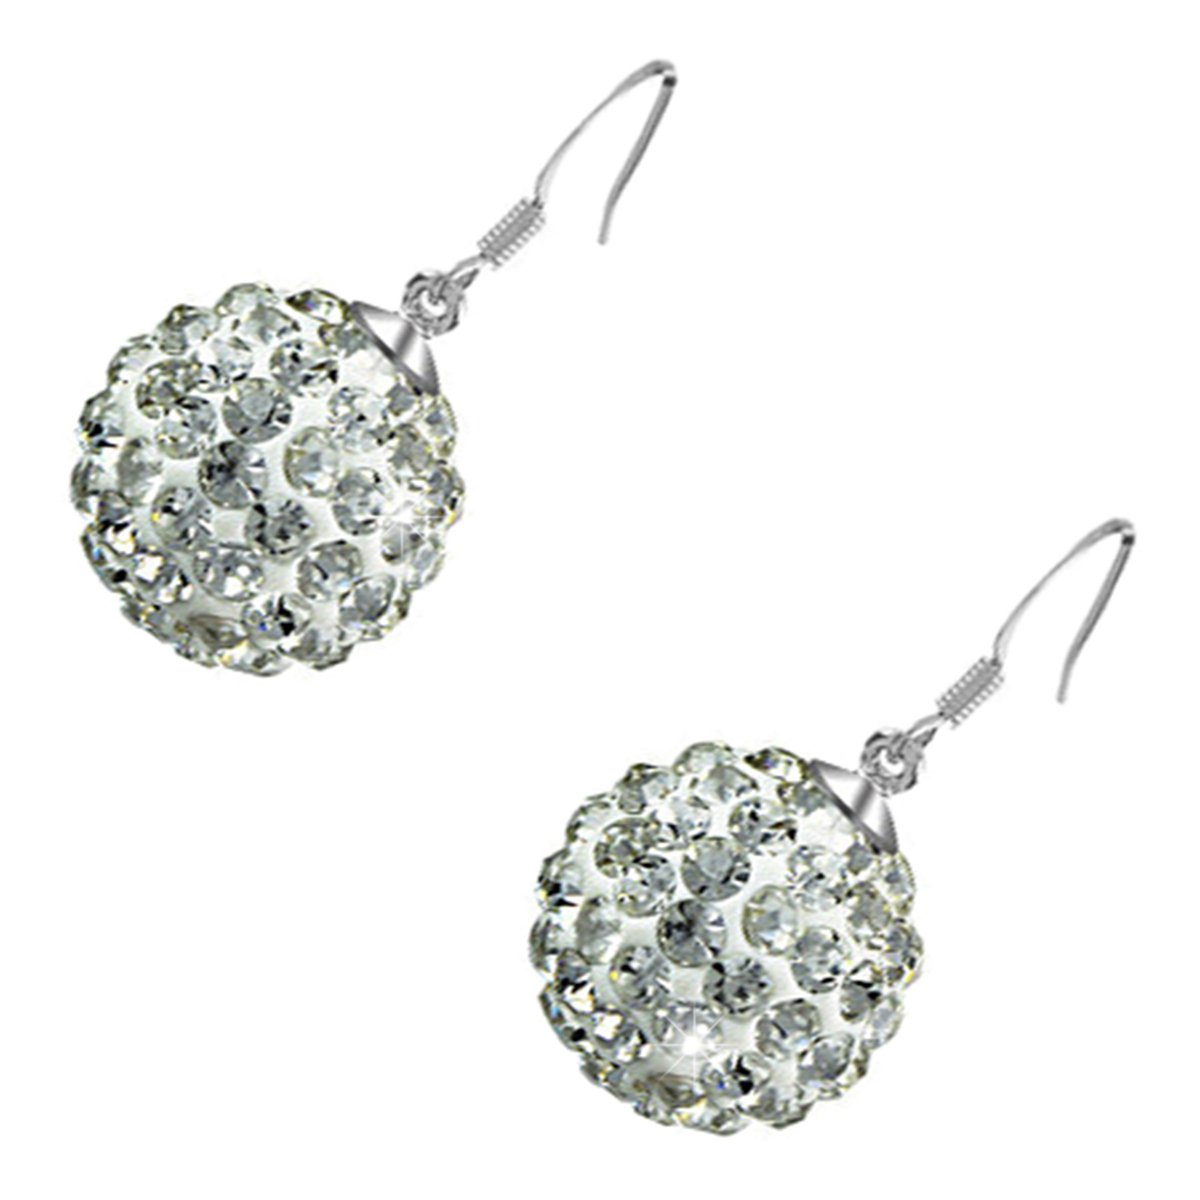 GWG Sterling Silver Plated Adorned with Sparkling Diamond Clear Crystals Ball Drop Earrings for Women